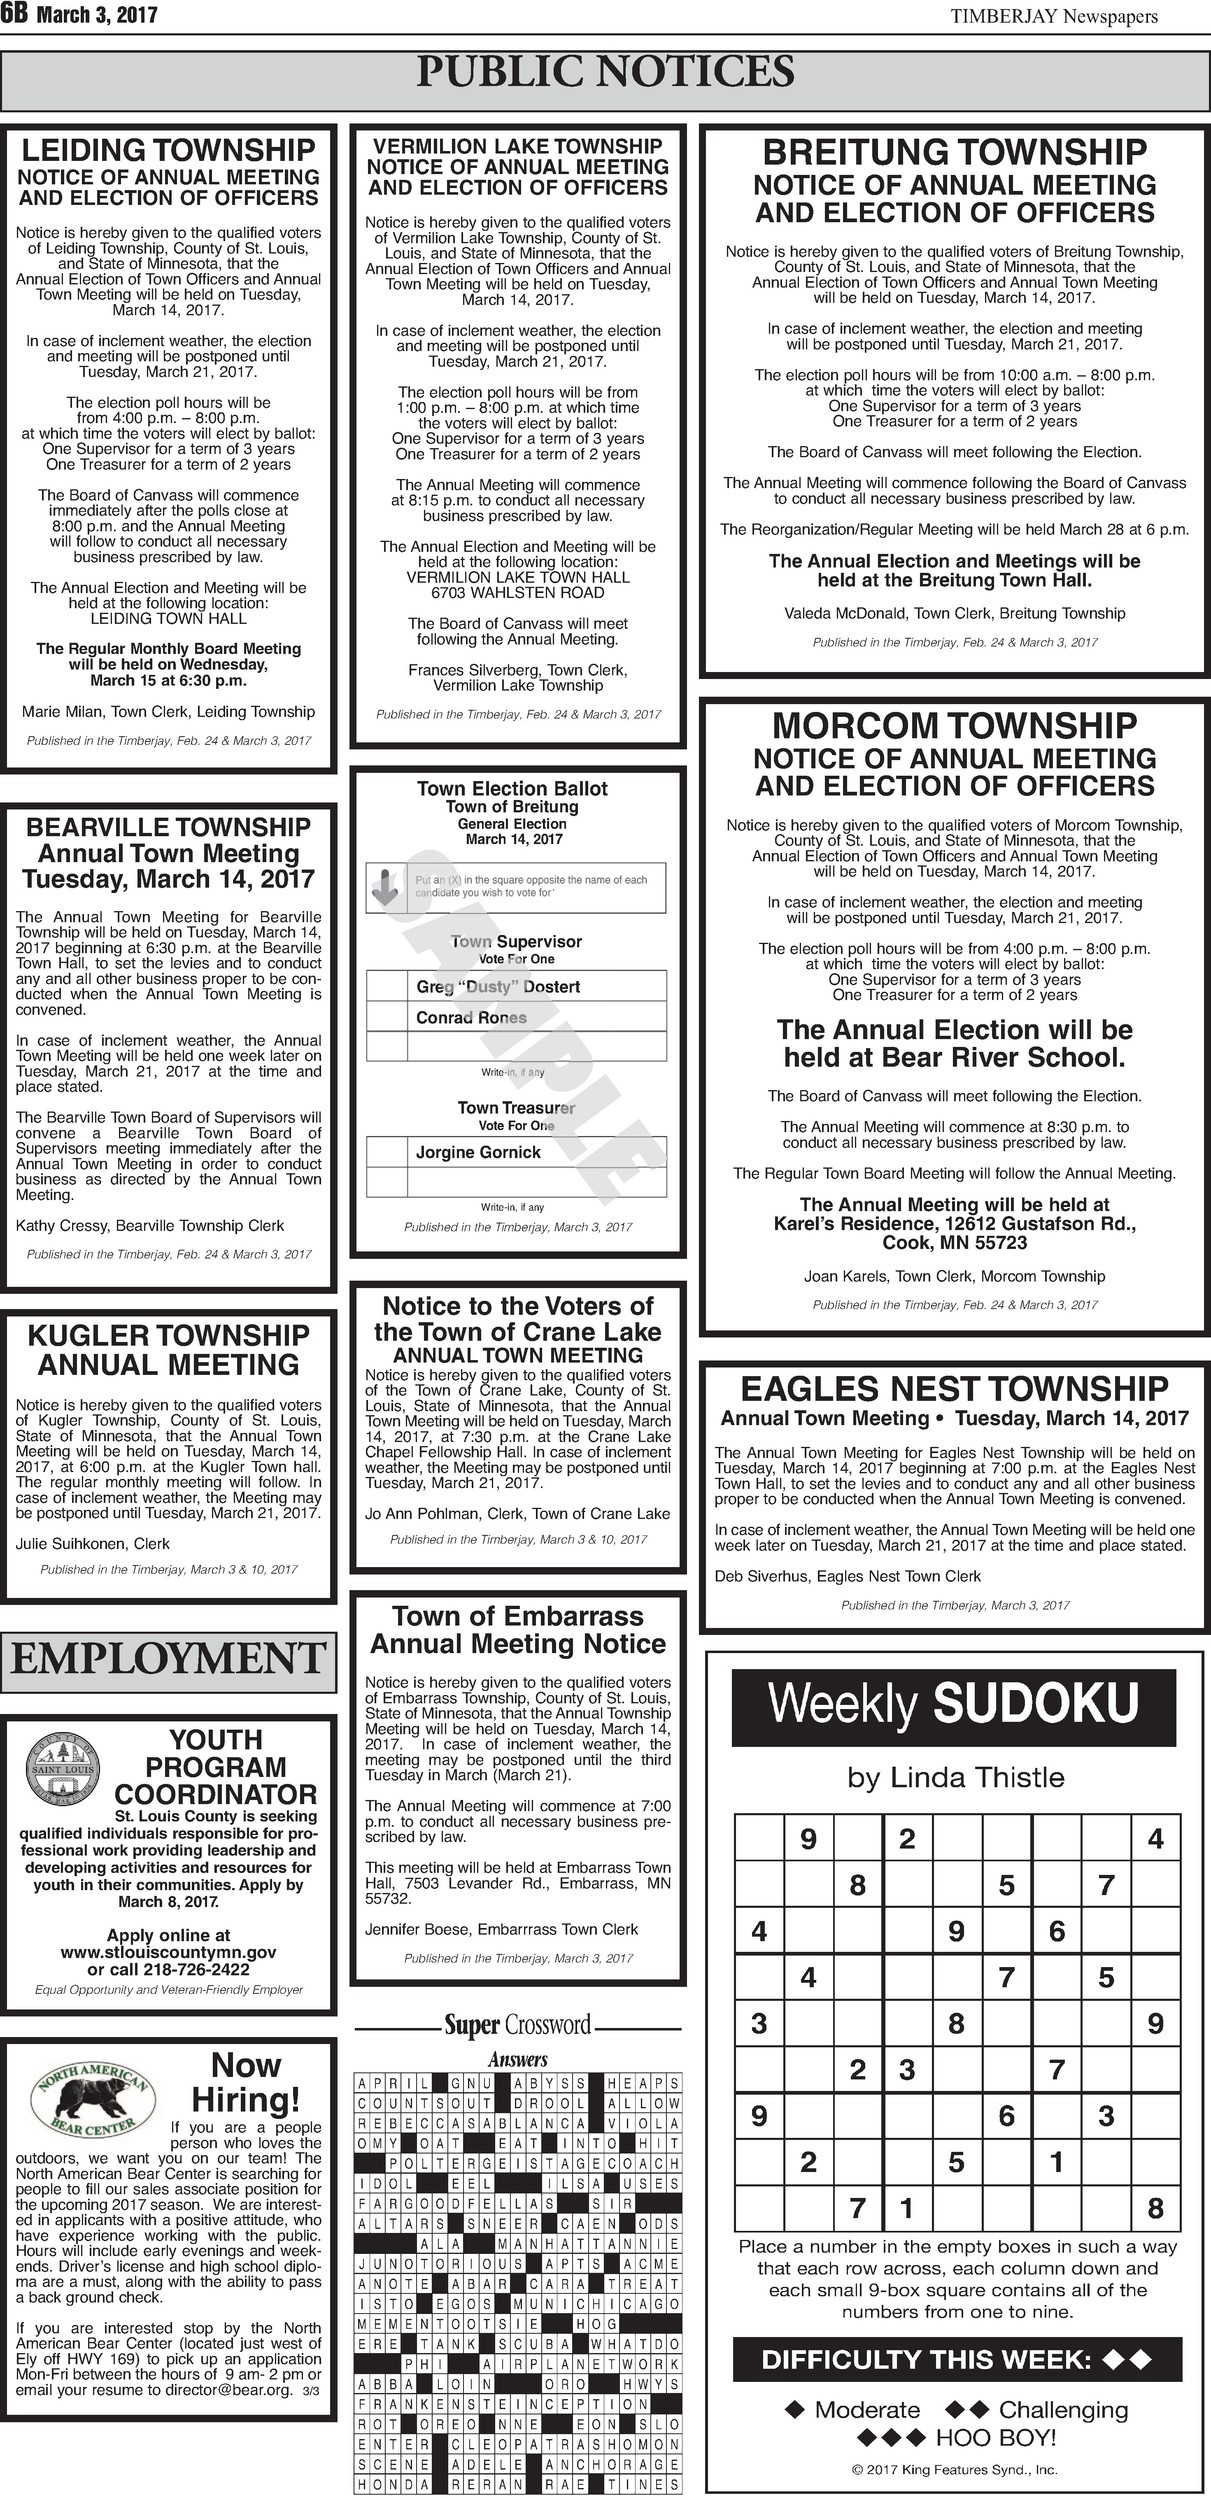 Click here for the legal notices and classifieds from page 6B